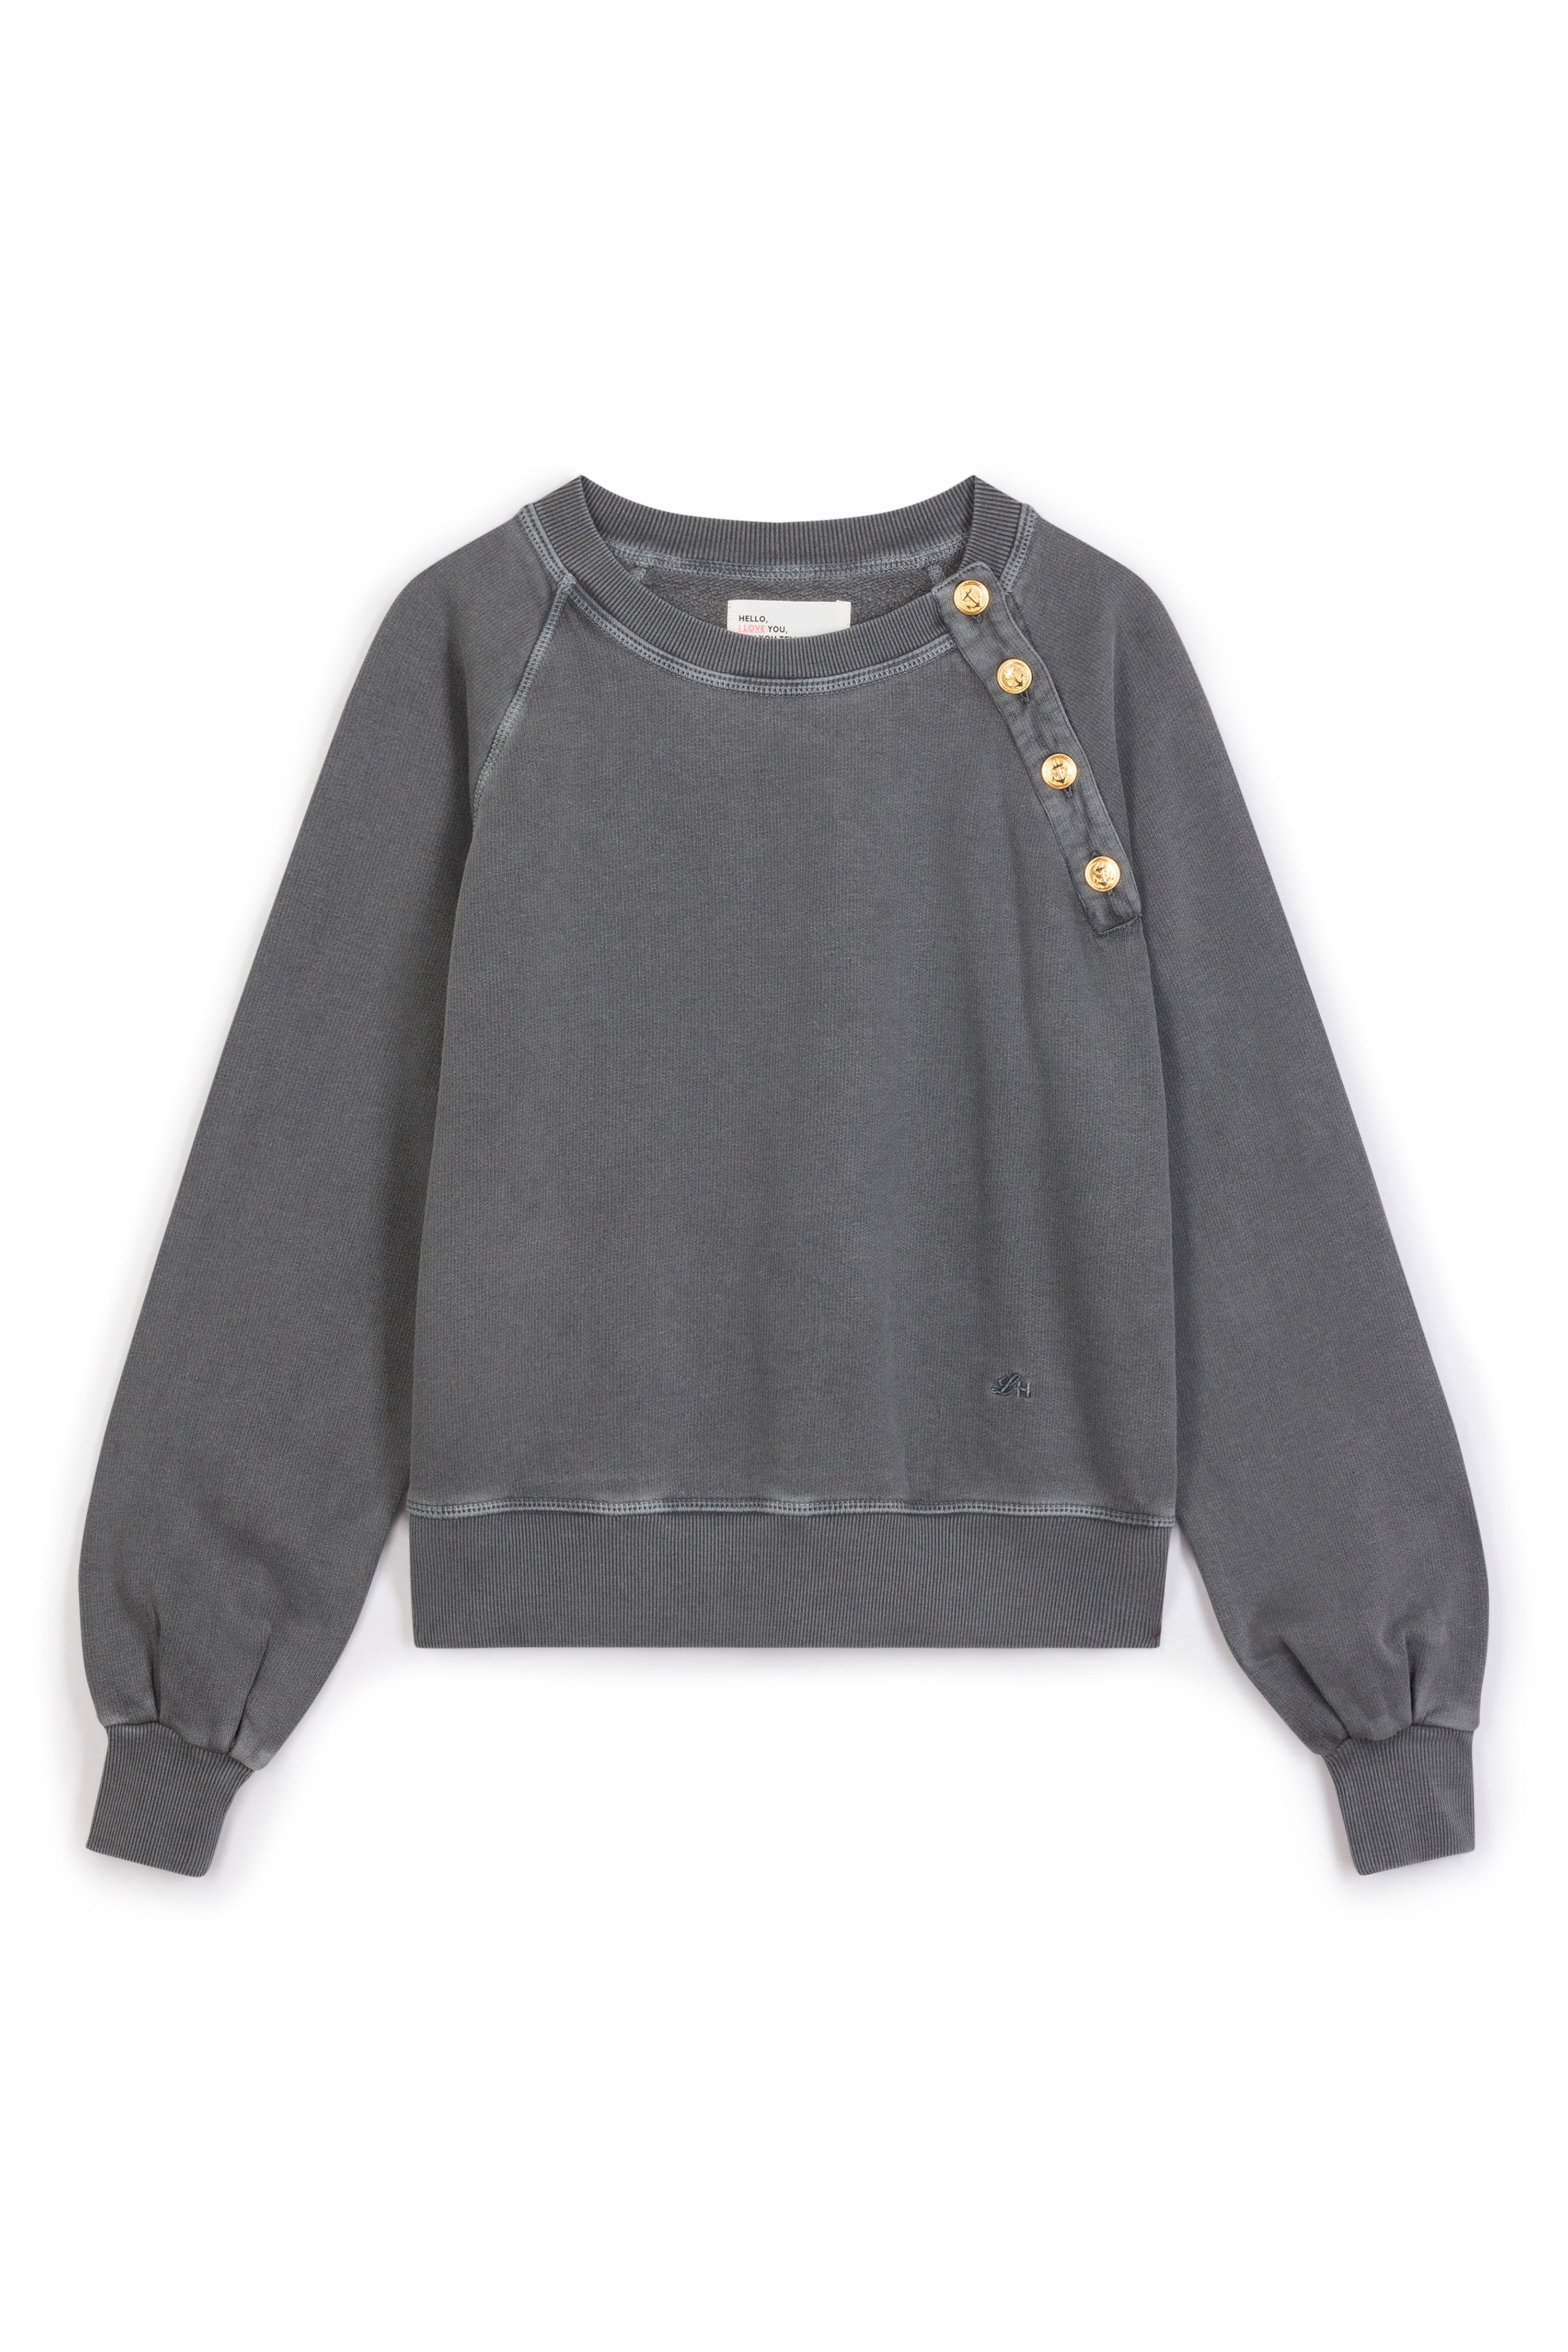 Image 5 du produit Song Plain Sweatshirt